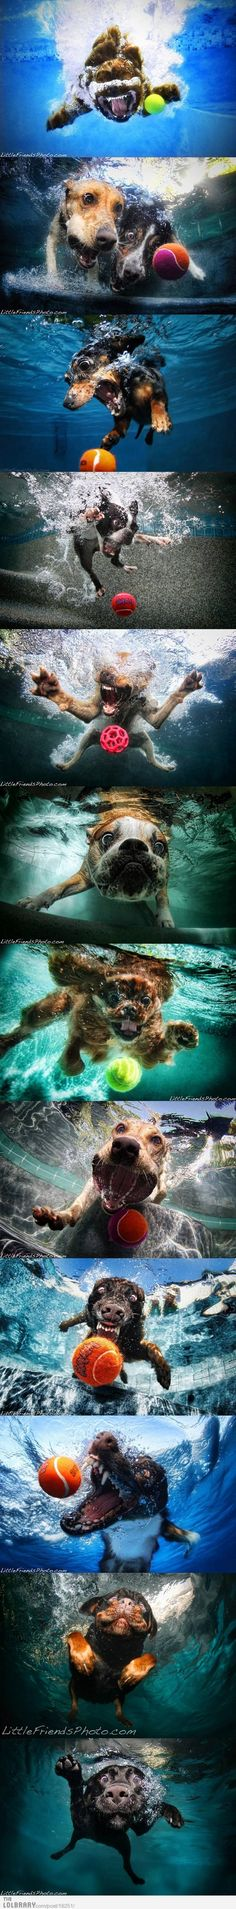 Dogs diving under the water. #dogs